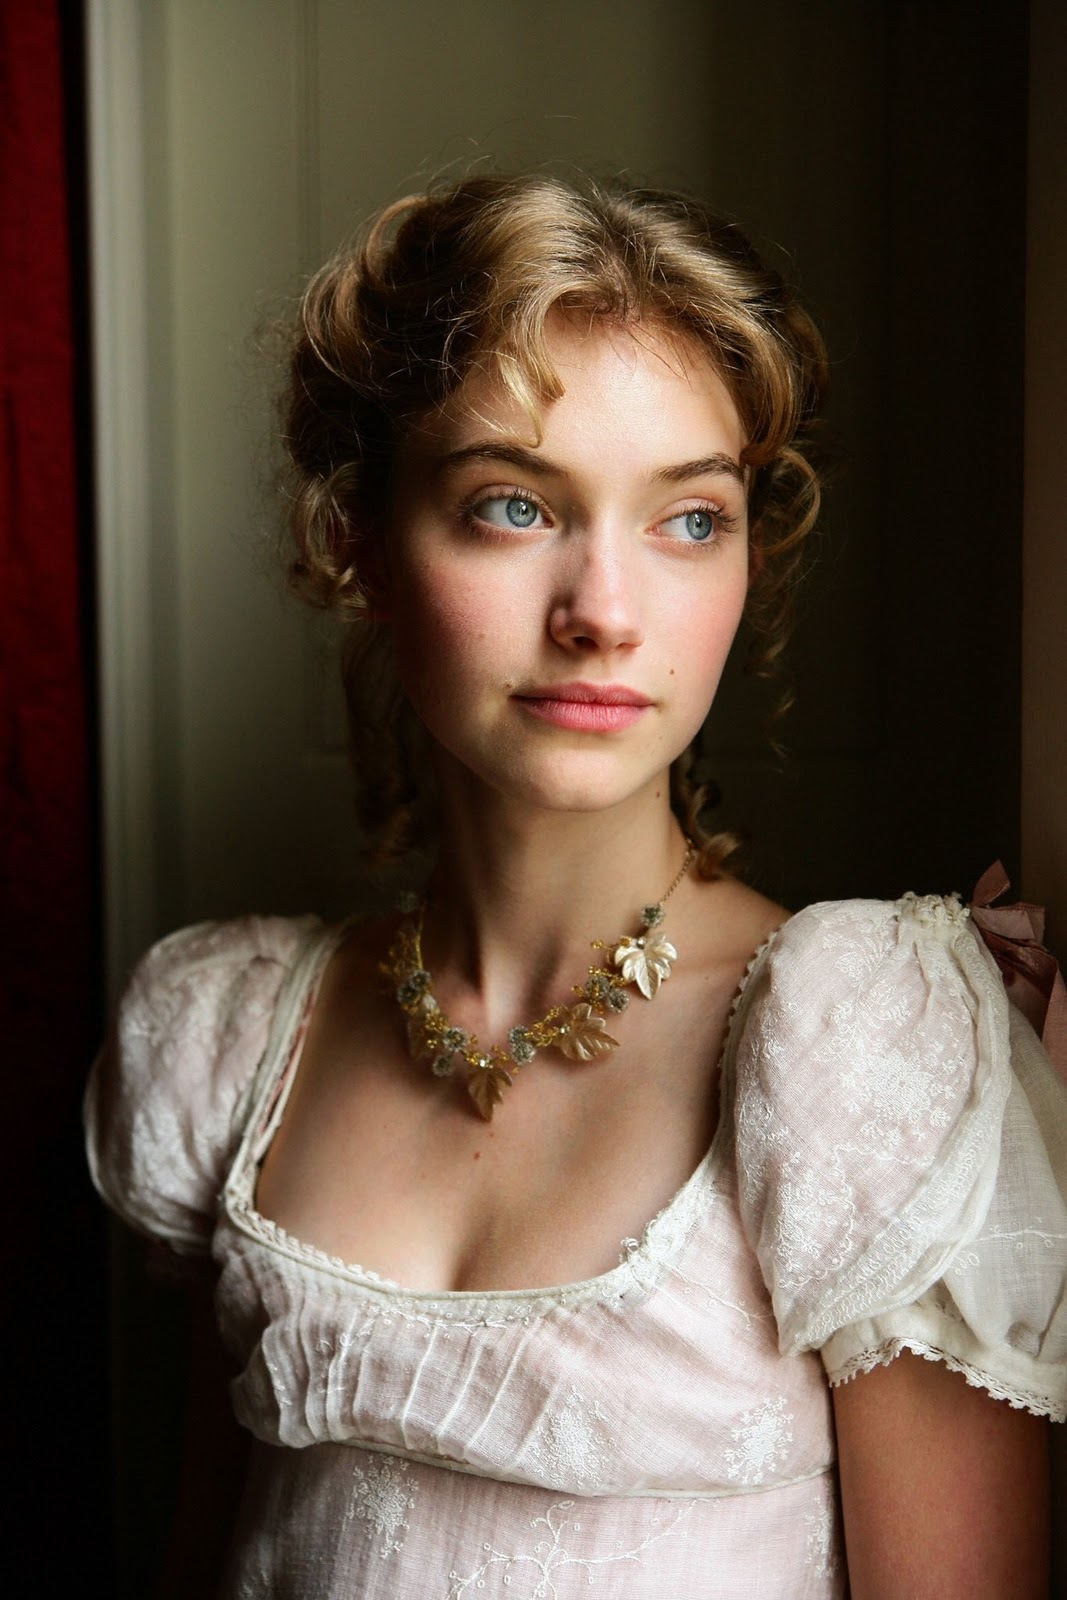 Imogen Poots Style Pictures - A Beautiful British Actress-4461